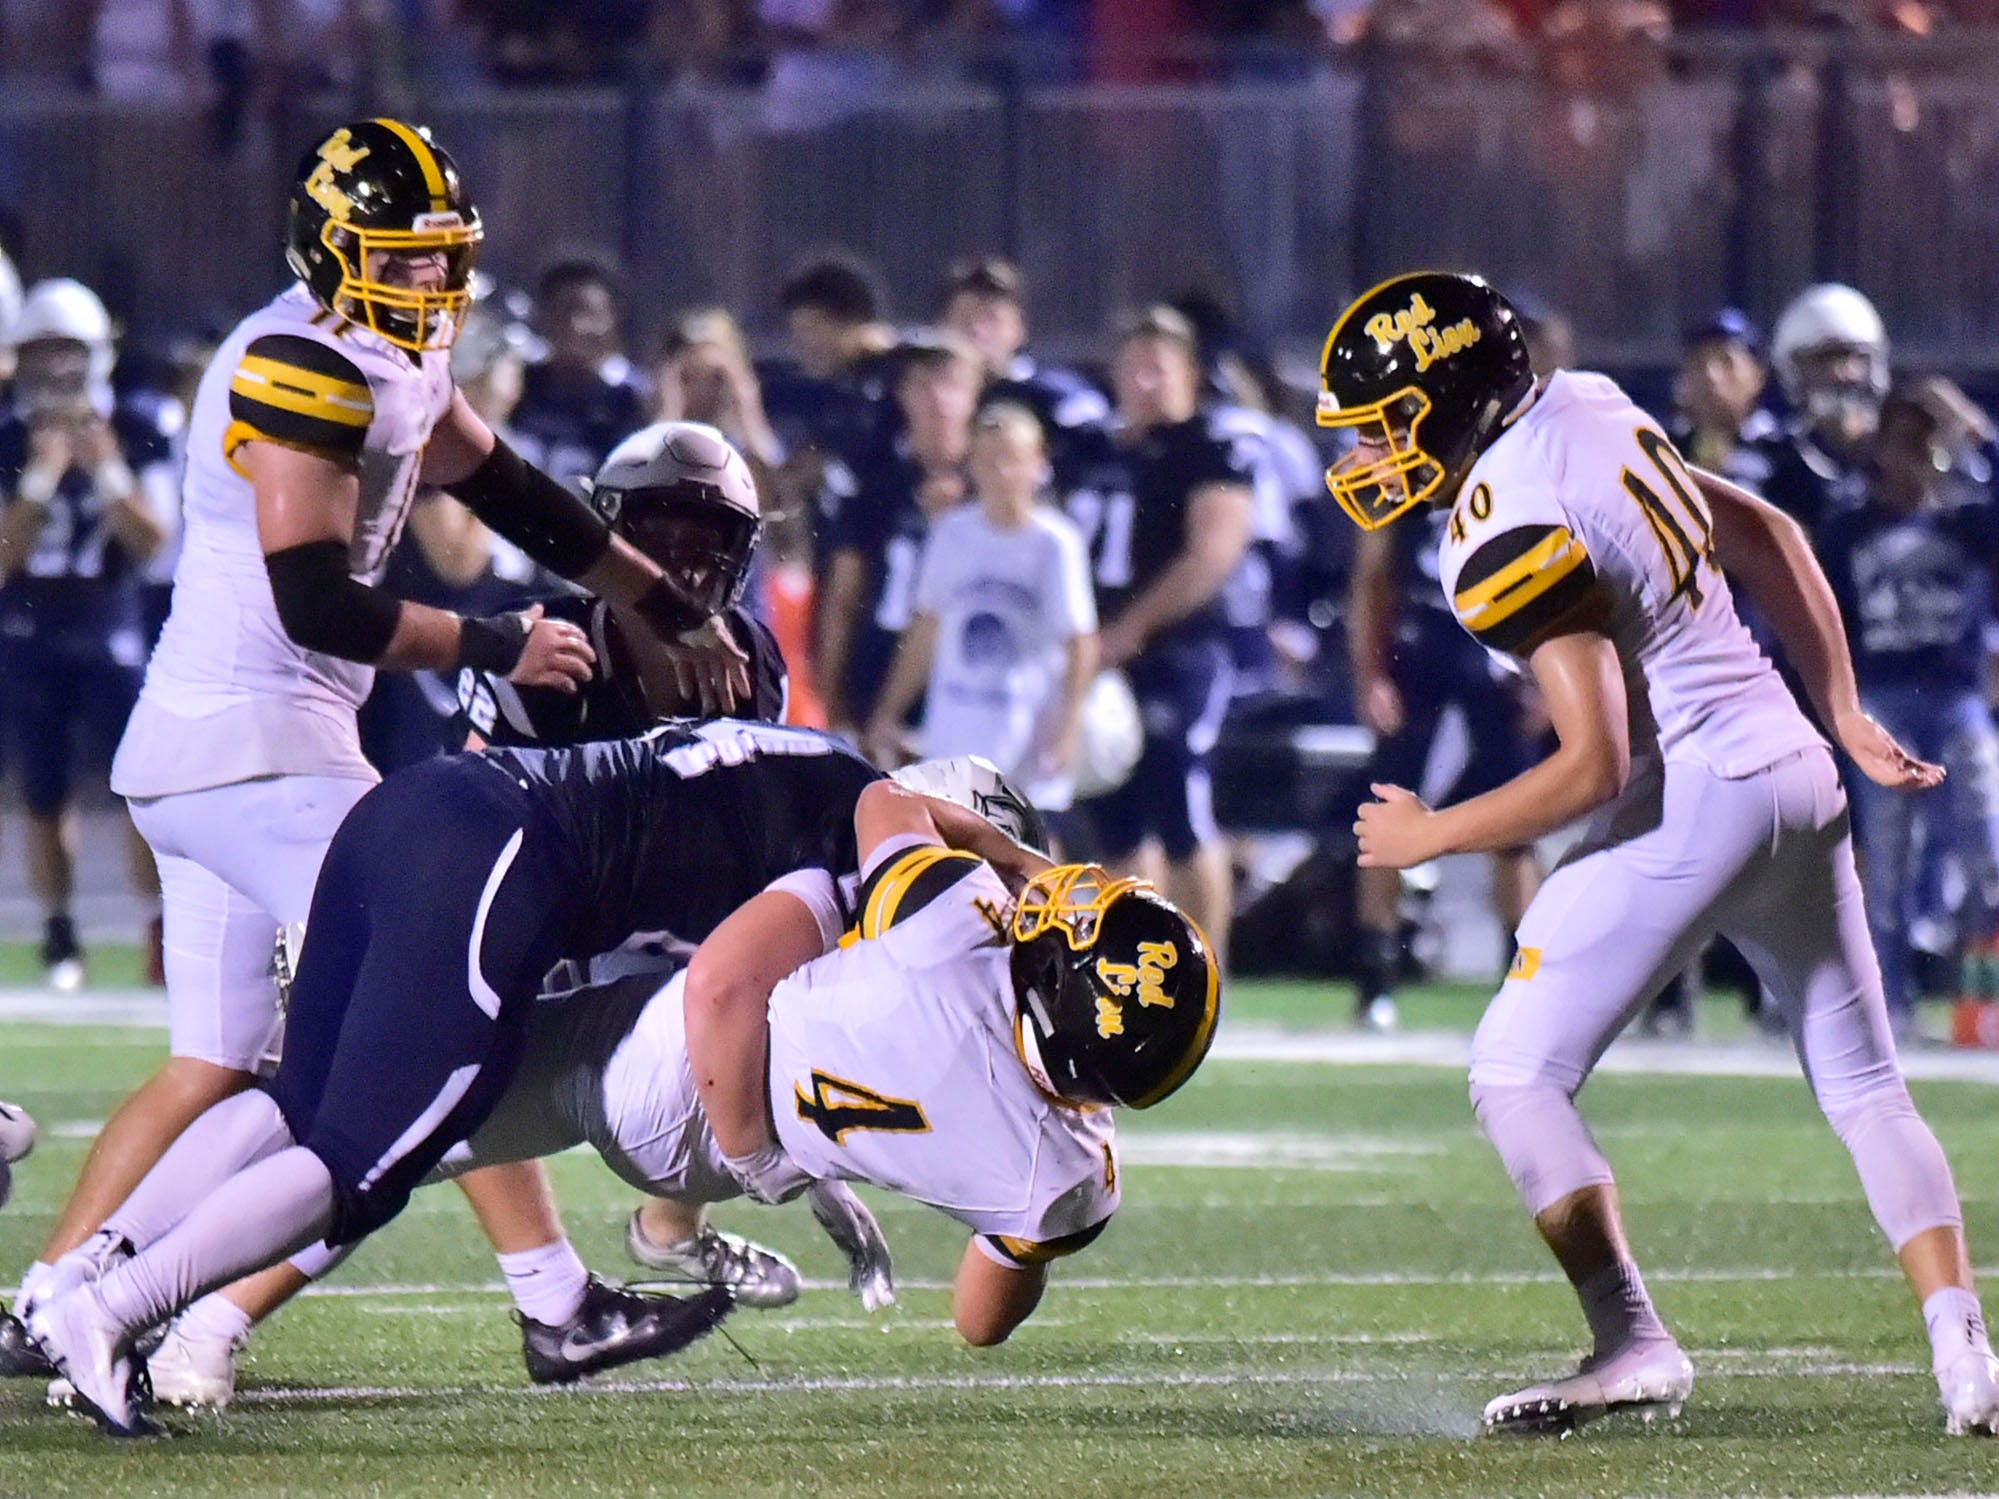 Red Lion's (4) is tackled by Chambersburg defenders. Chambersburg defeated Red Lion 28-19 in PIAA football on Friday, Sept. 7, 2018.